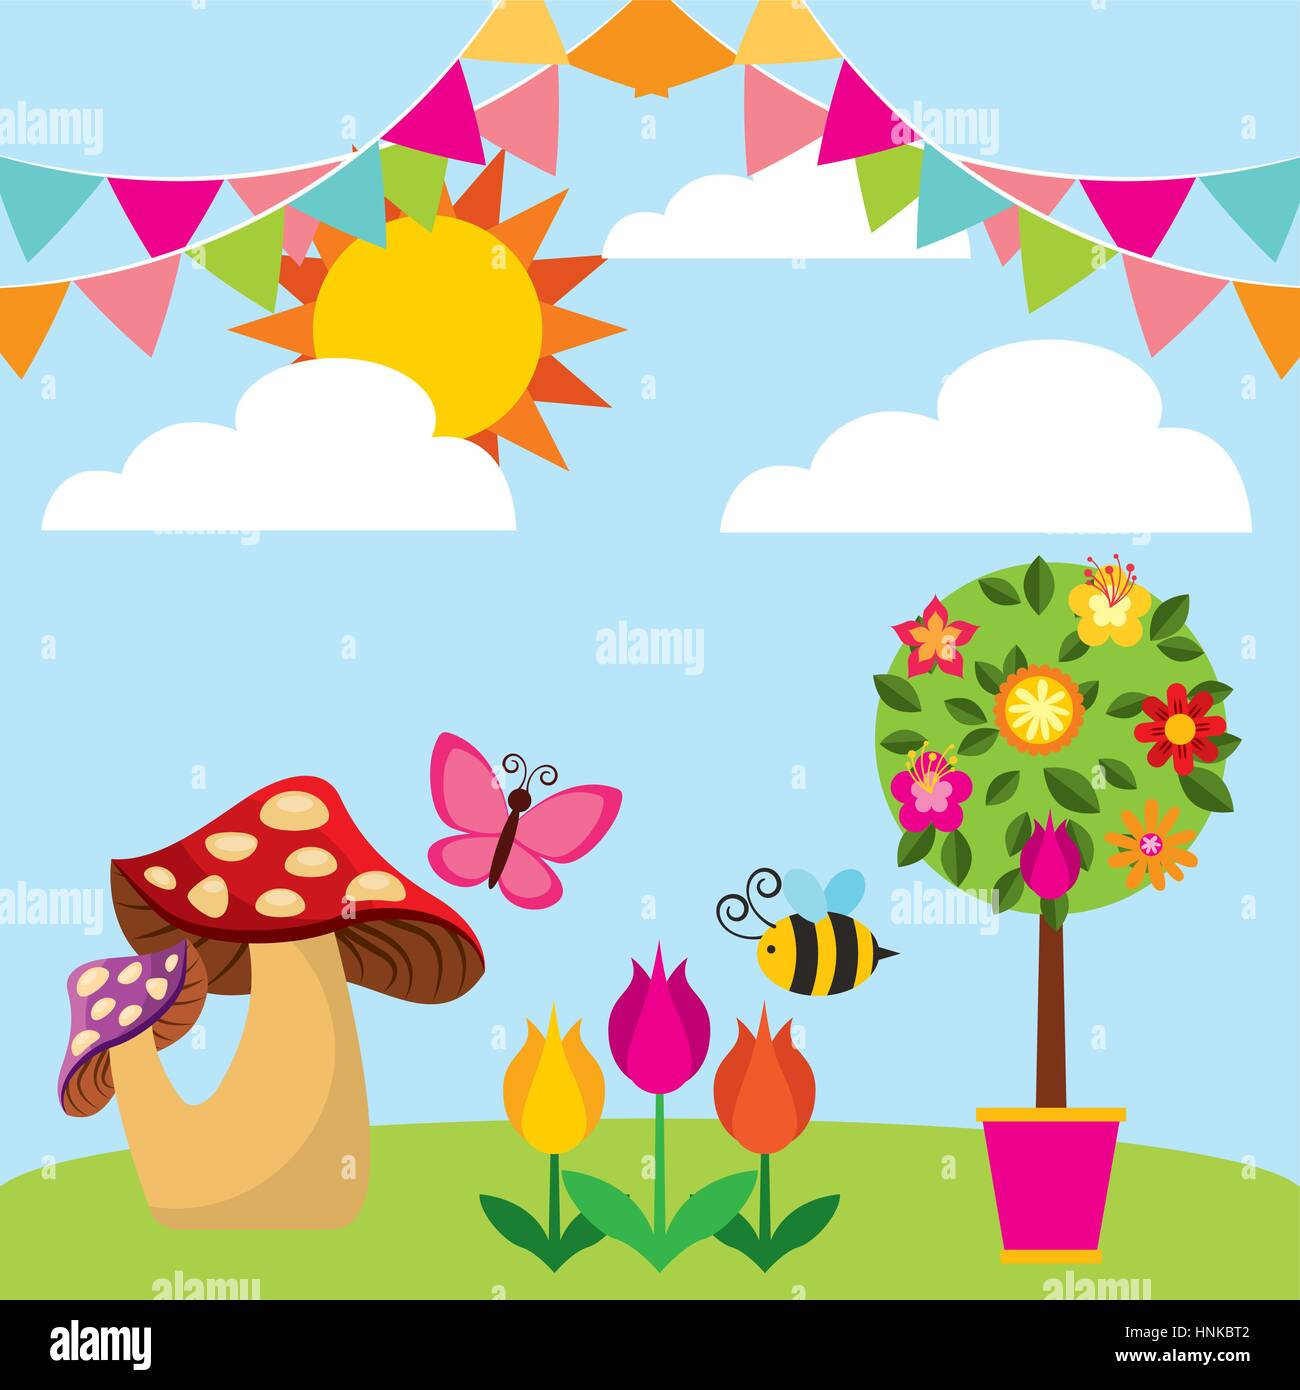 tree with flowers and fungus over garden background colorful design stock vector image art alamy https www alamy com stock photo tree with flowers and fungus over garden background colorful design 133806738 html